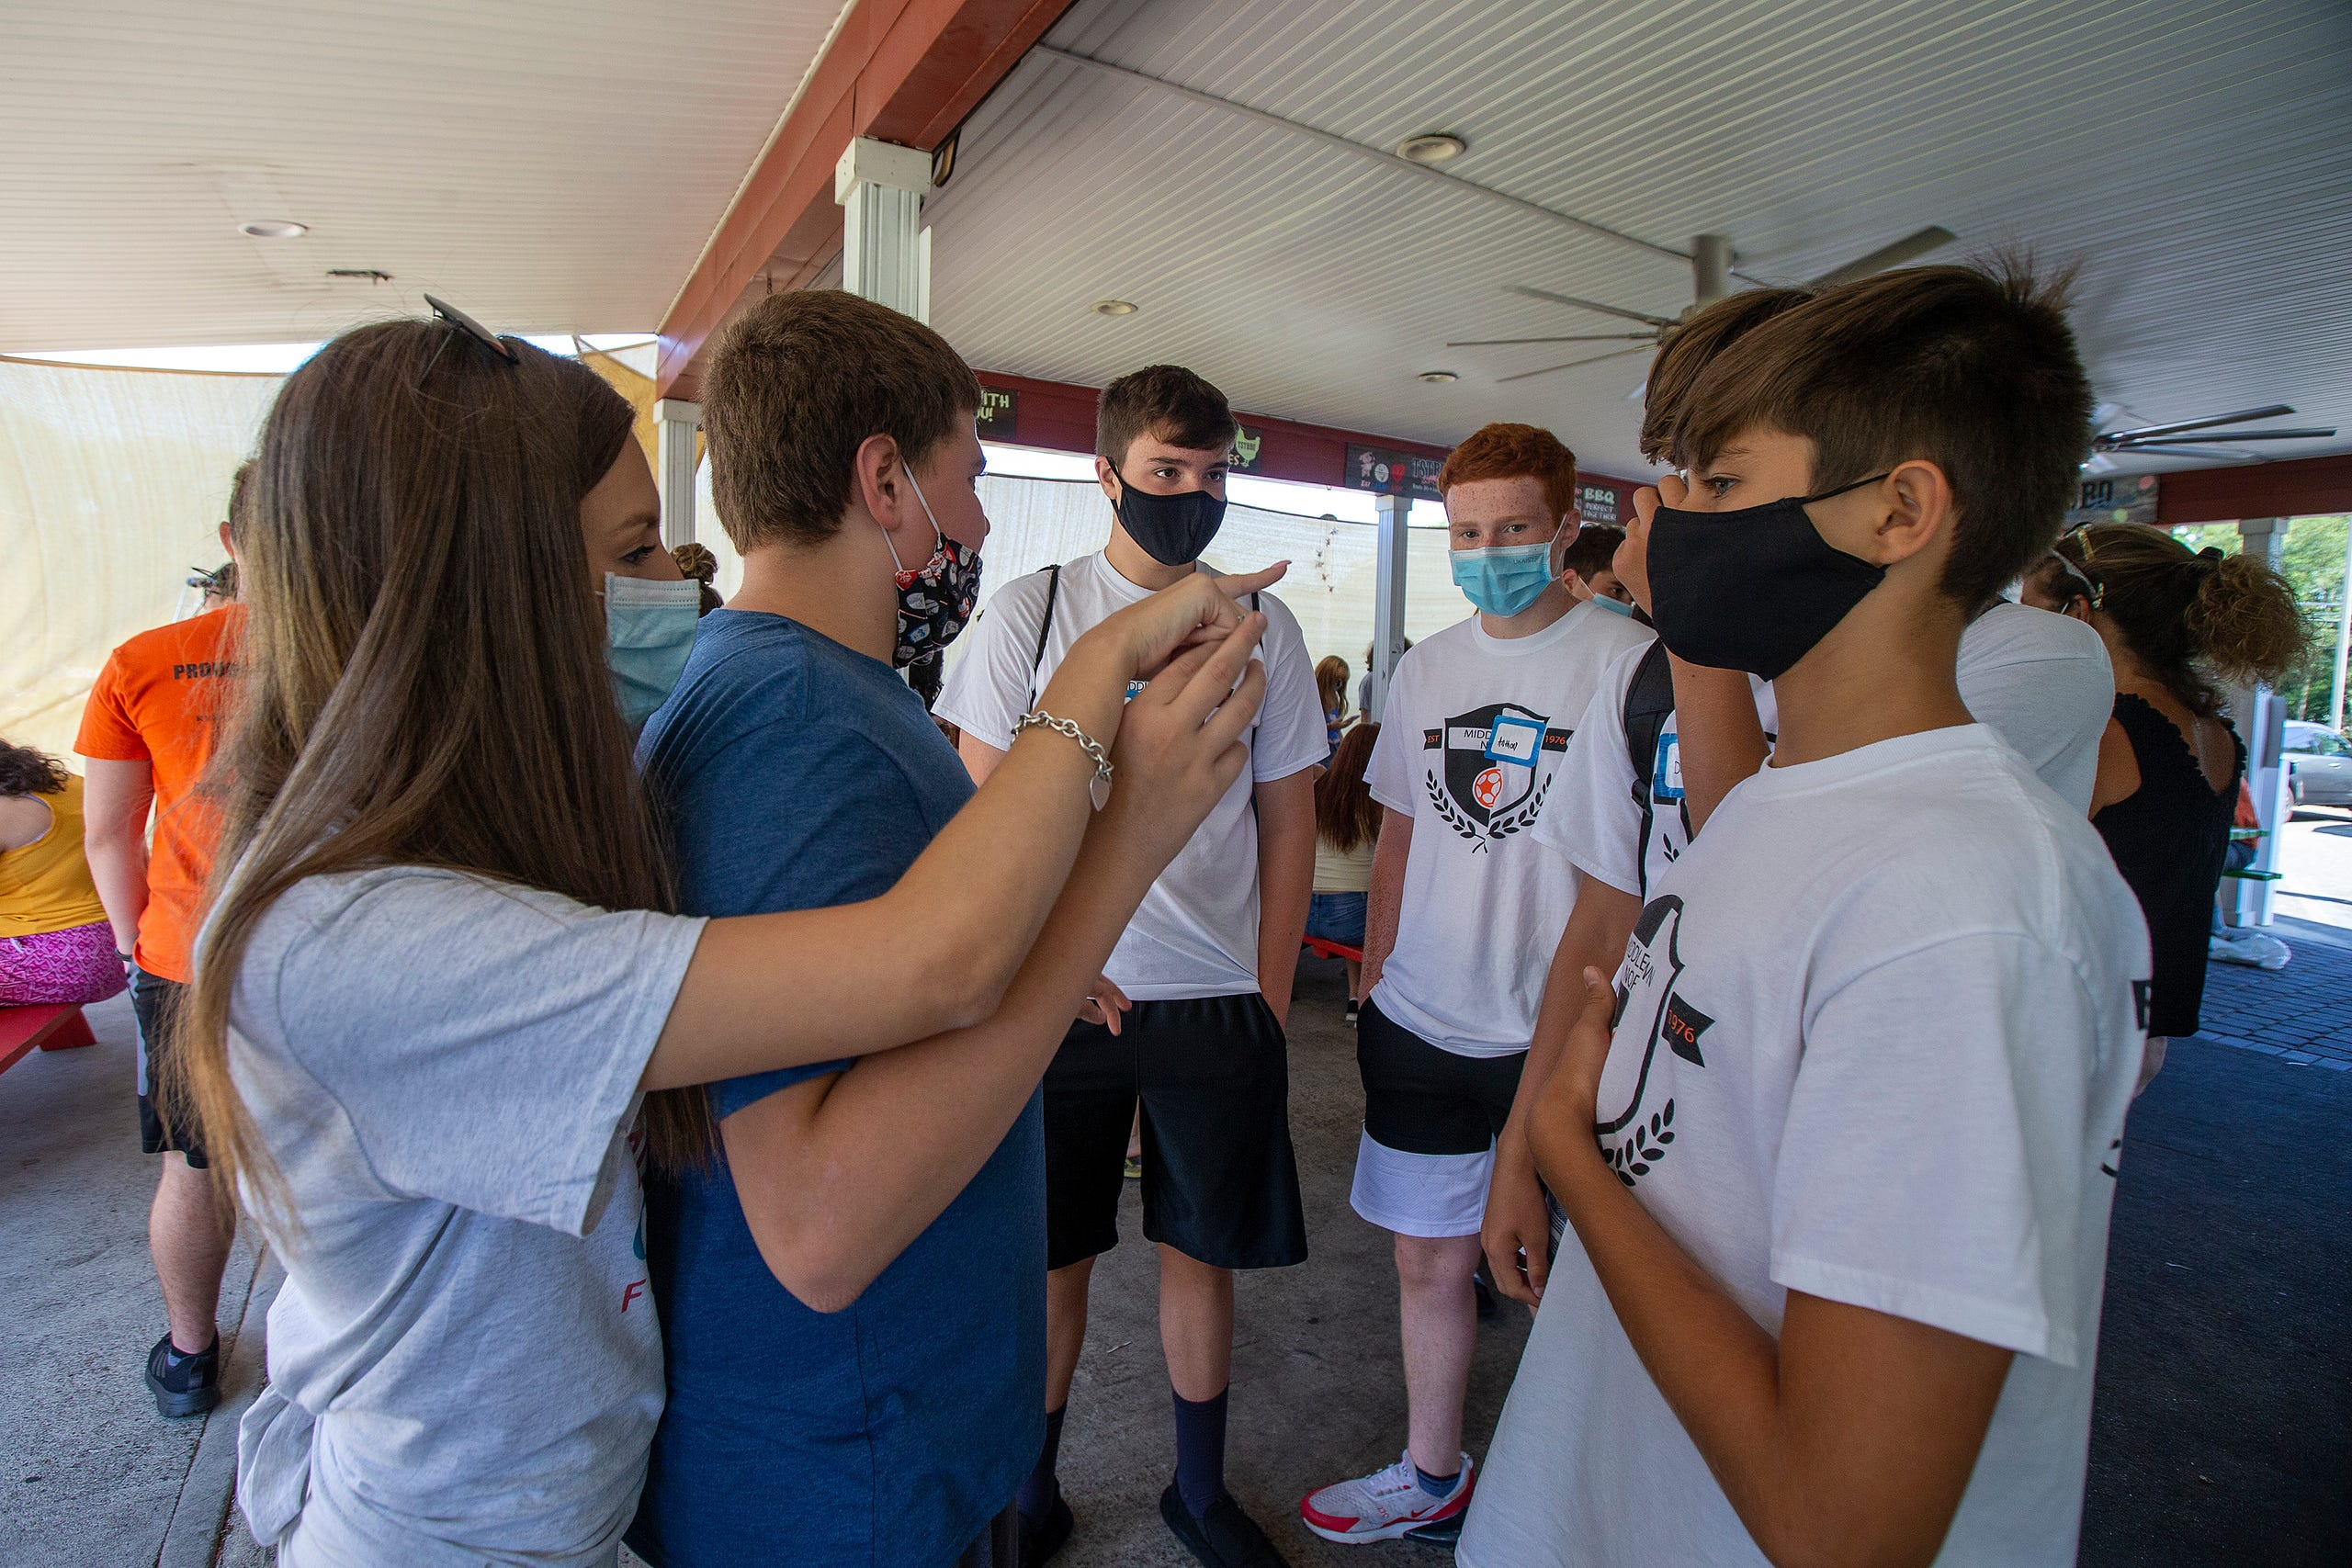 Sophia Ziajski, 19, of Middletown introduces Marc Corallo, 12, of Middletown to members of the Middletown North boys soccer team who will play mini-golf with him as part of Friends Connect Foundation, a nonprofit run by Sophia Ziajski,, at TST BBQ & Mini Golf in Middletown, NJ Tuesday, August 18, 2020.